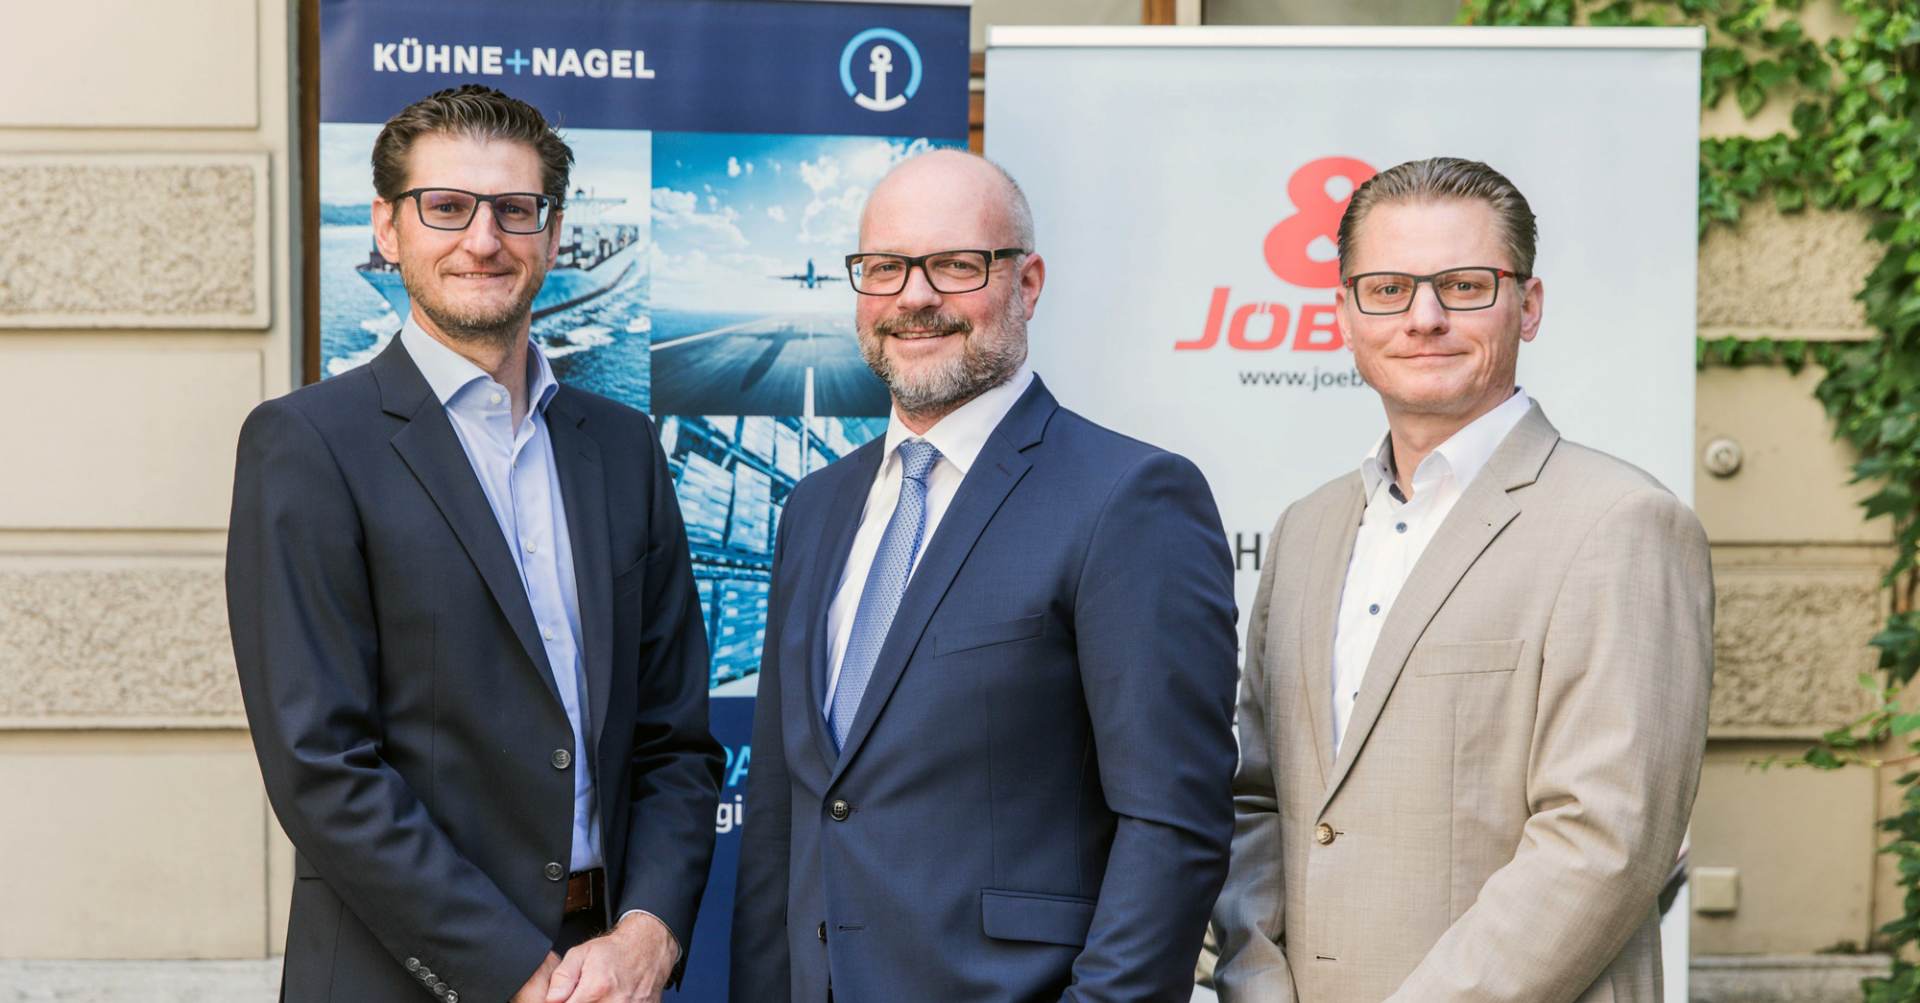 Kuehne + Nagel enhances overland network with the acquisition of the Jöbstl Group